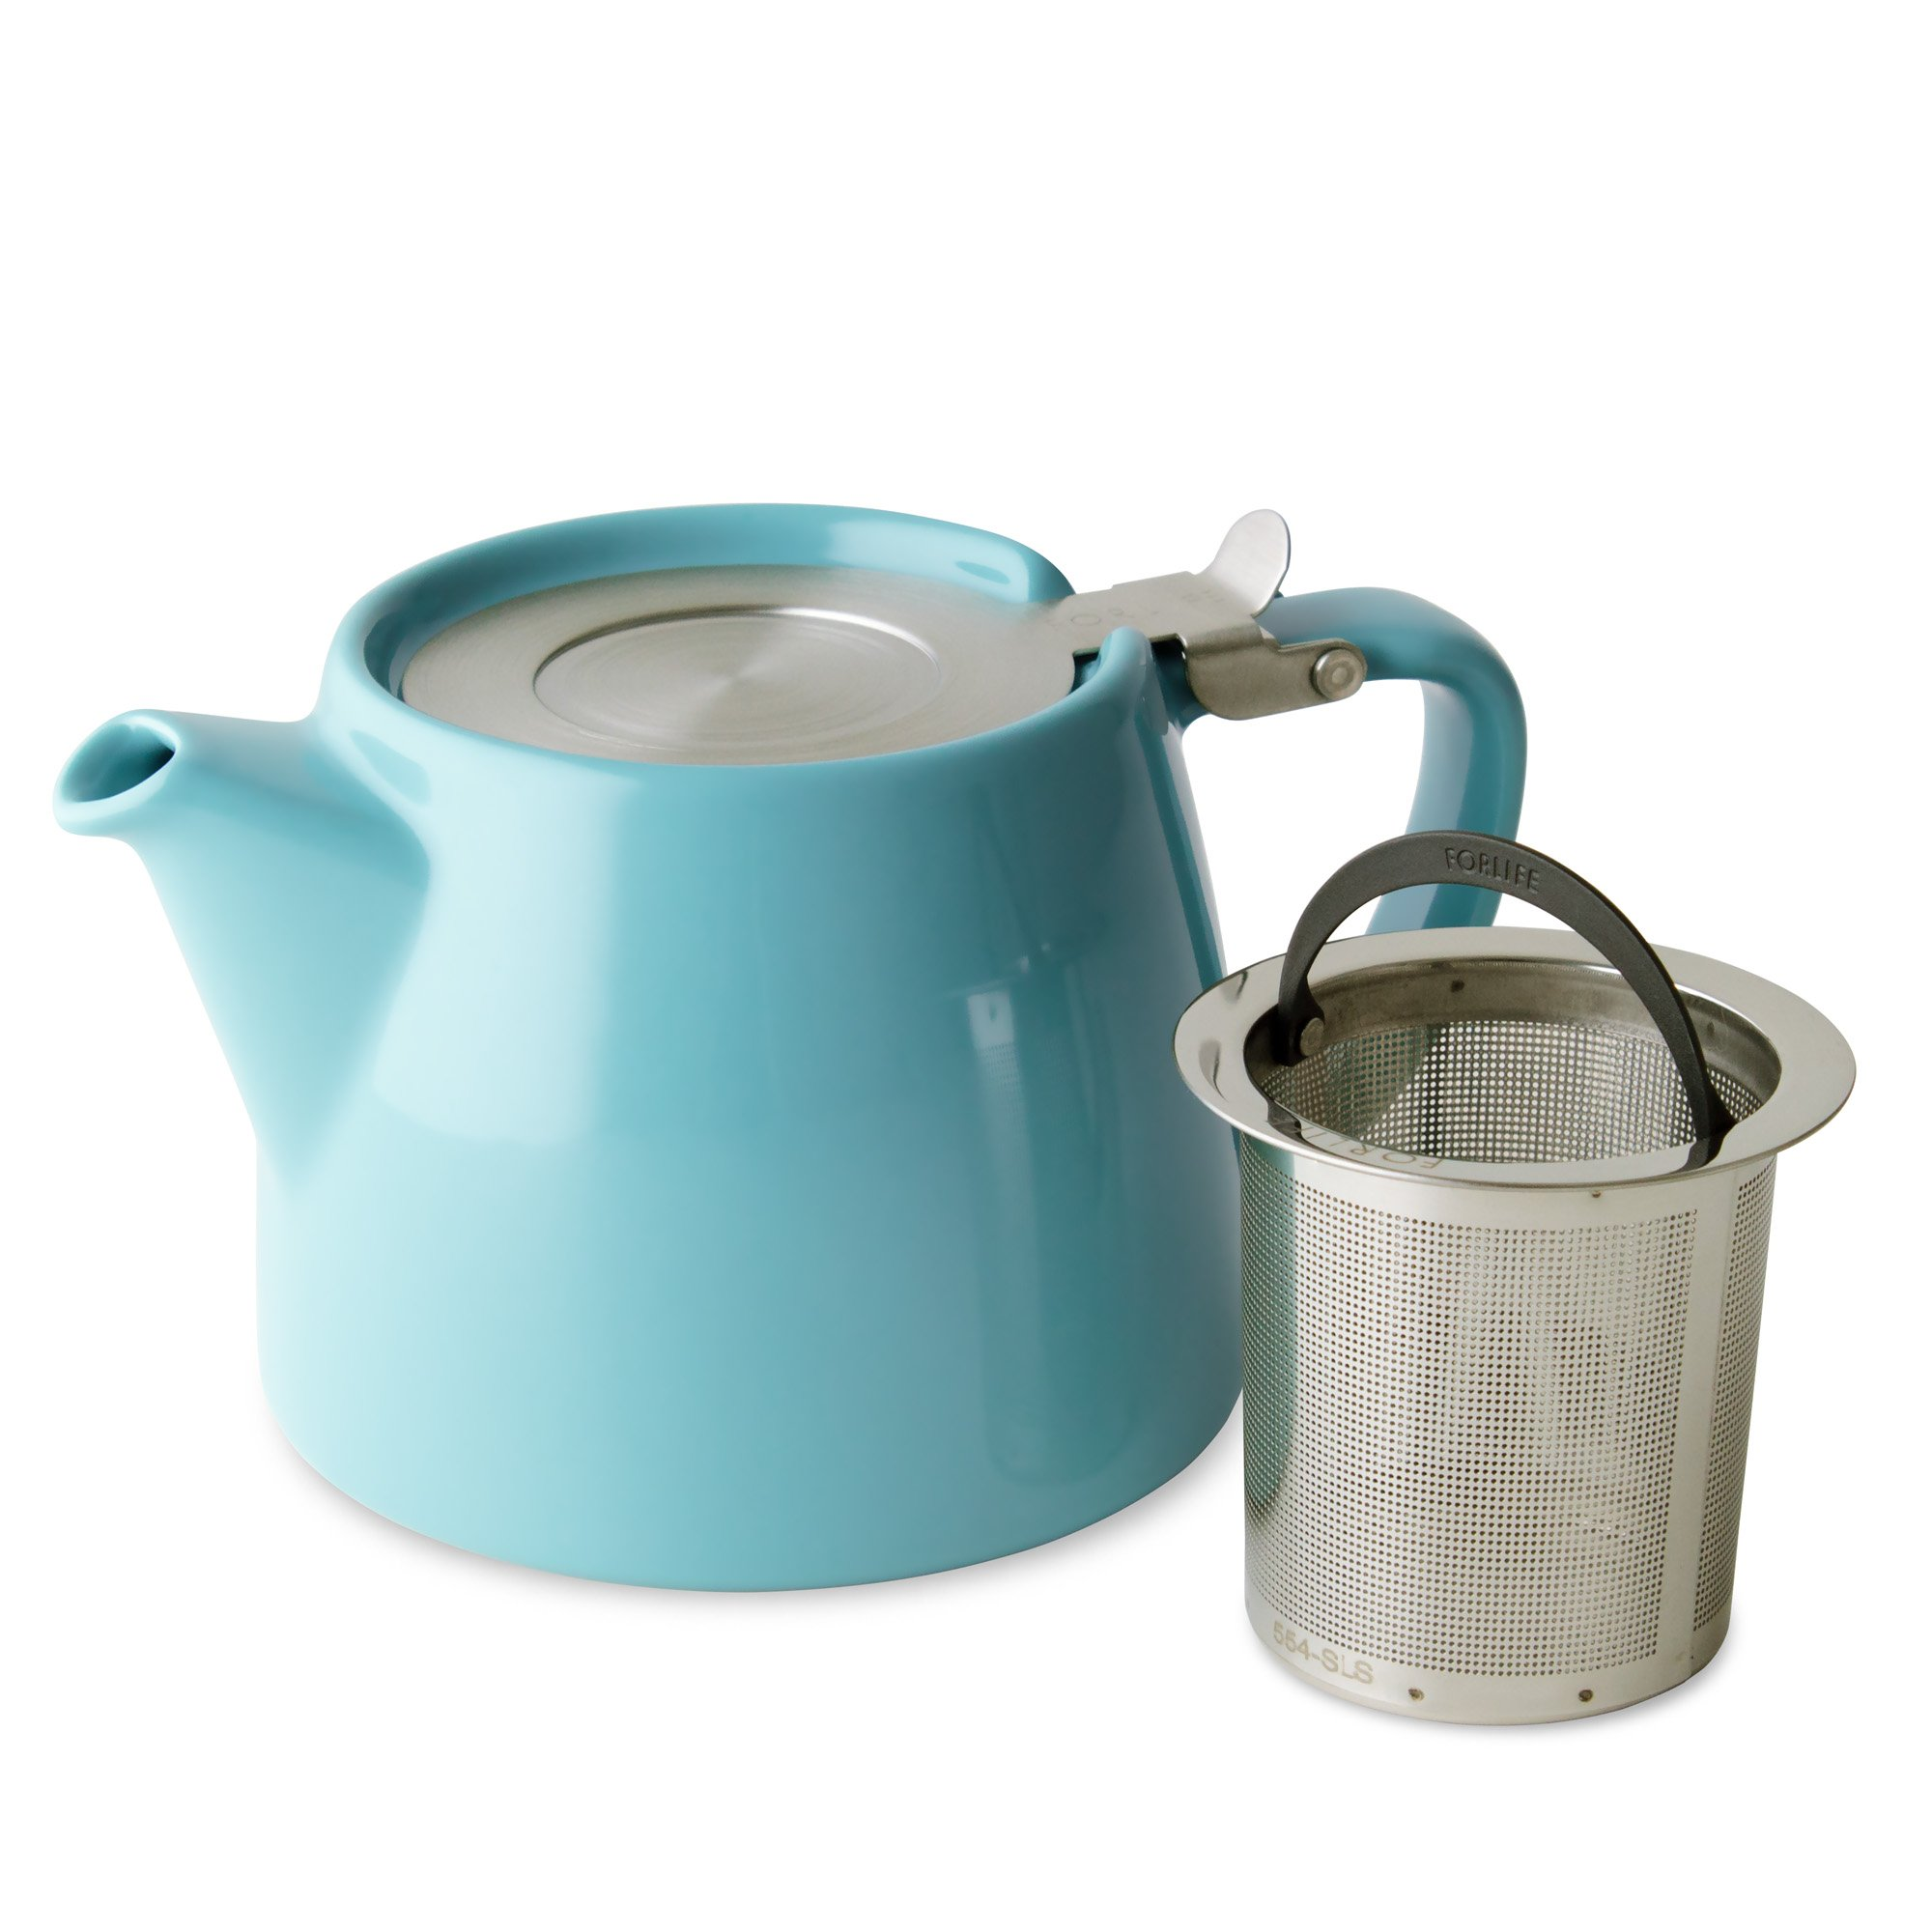 FORLIFE Stump Teapot with SLS Lid and Infuser, 18-Ounce, Turquoise by FORLIFE (Image #2)